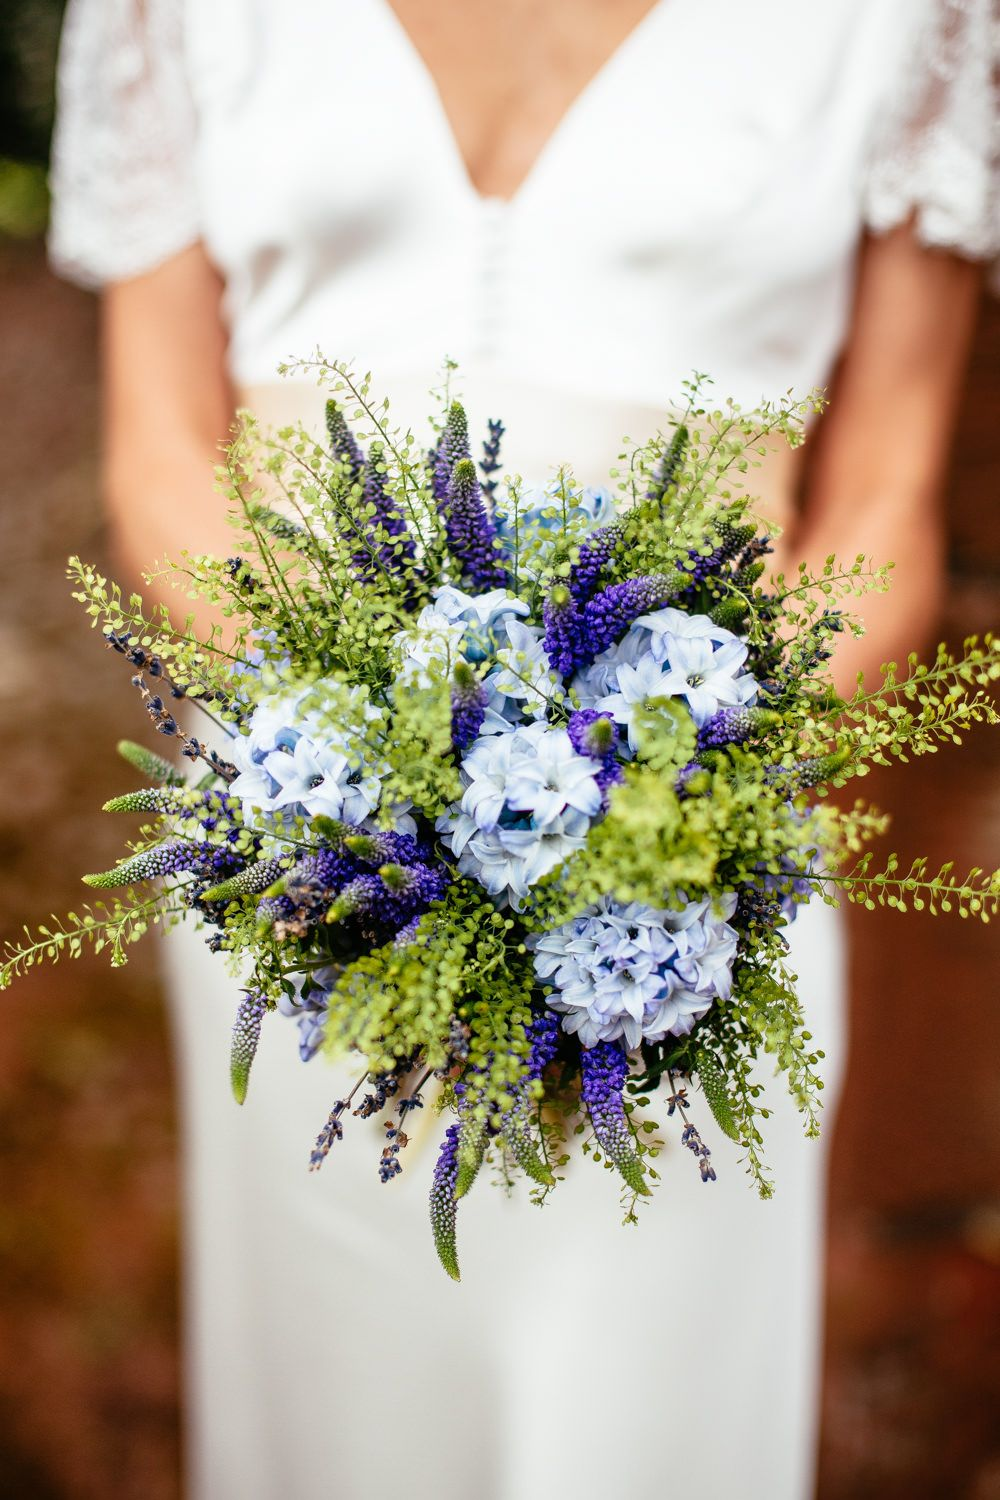 Charlie brear dress for a vintage barn wedding wedding bouquets blue hyacinths lavender wild flower bouquet tied with twine image by cassandra lane photography a charlie brear lace and silk dress for a west izmirmasajfo